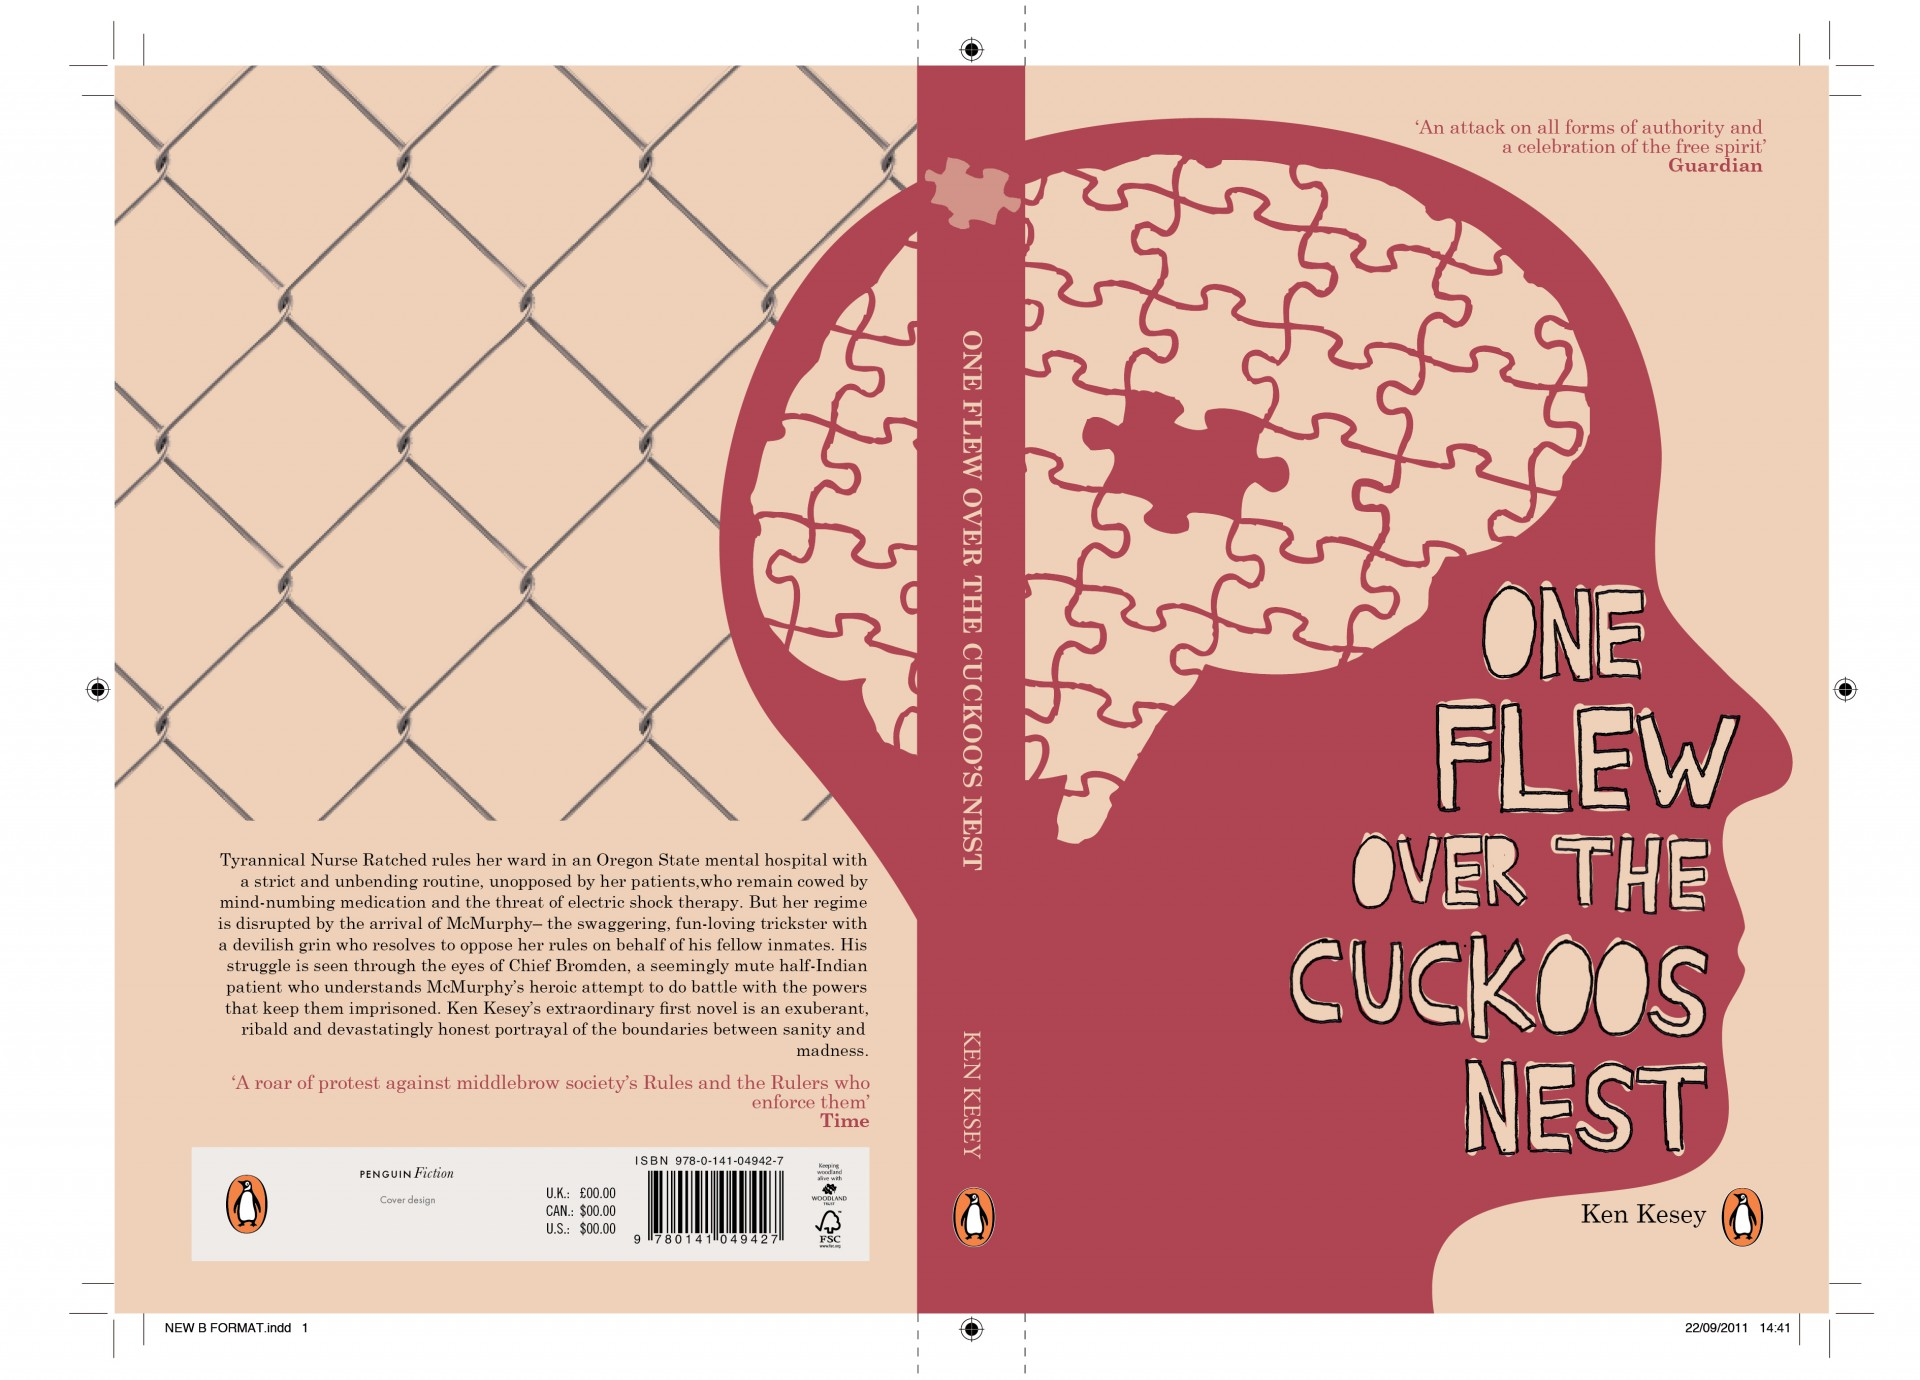 007 636199346646320168772420585 One Flew Over The Cuckoo Nest Book Cover3 Cuckoos Essay Wonderful Cuckoo's Prompts Writing Analysis Questions 1920